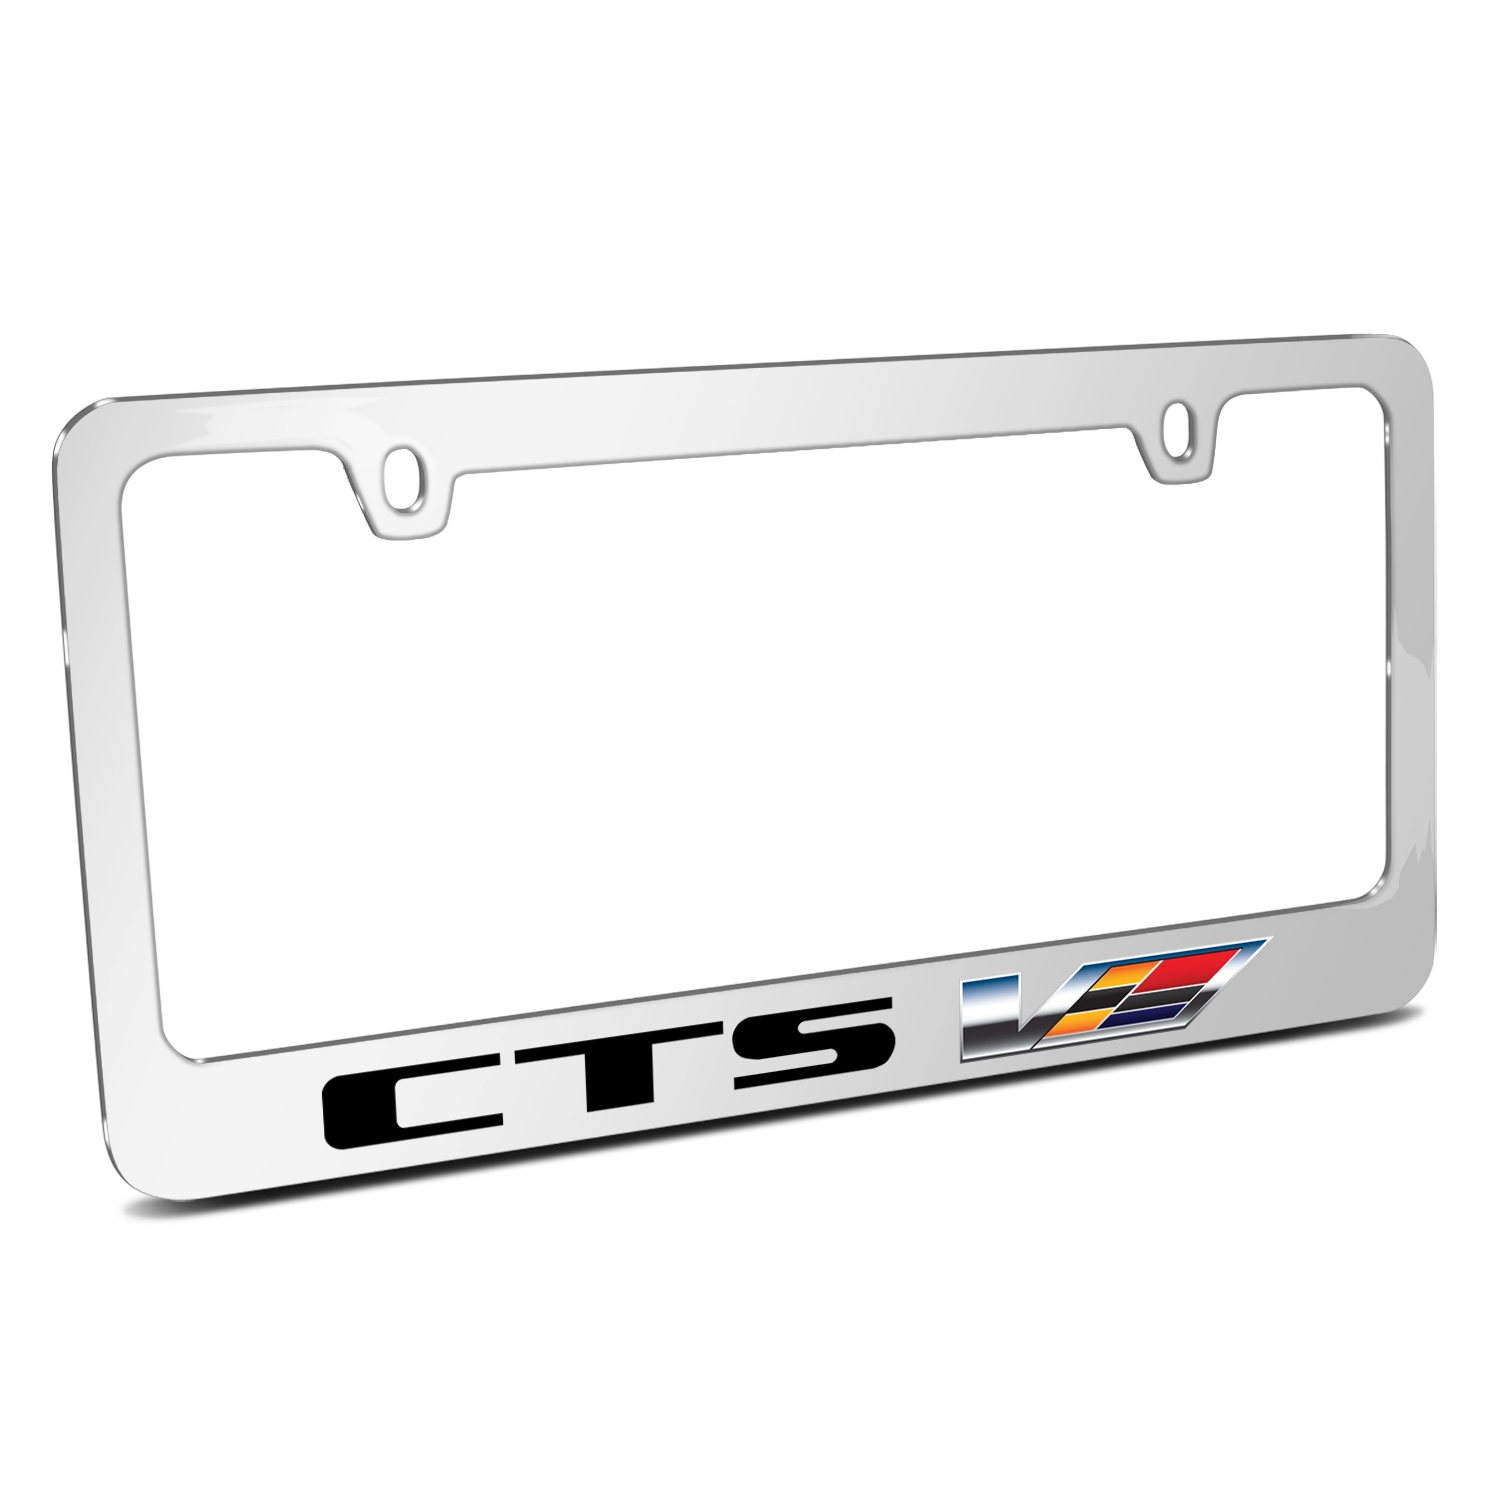 Cadillac CTS V 2007 Logo Mirror Chrome Metal License Plate Frame